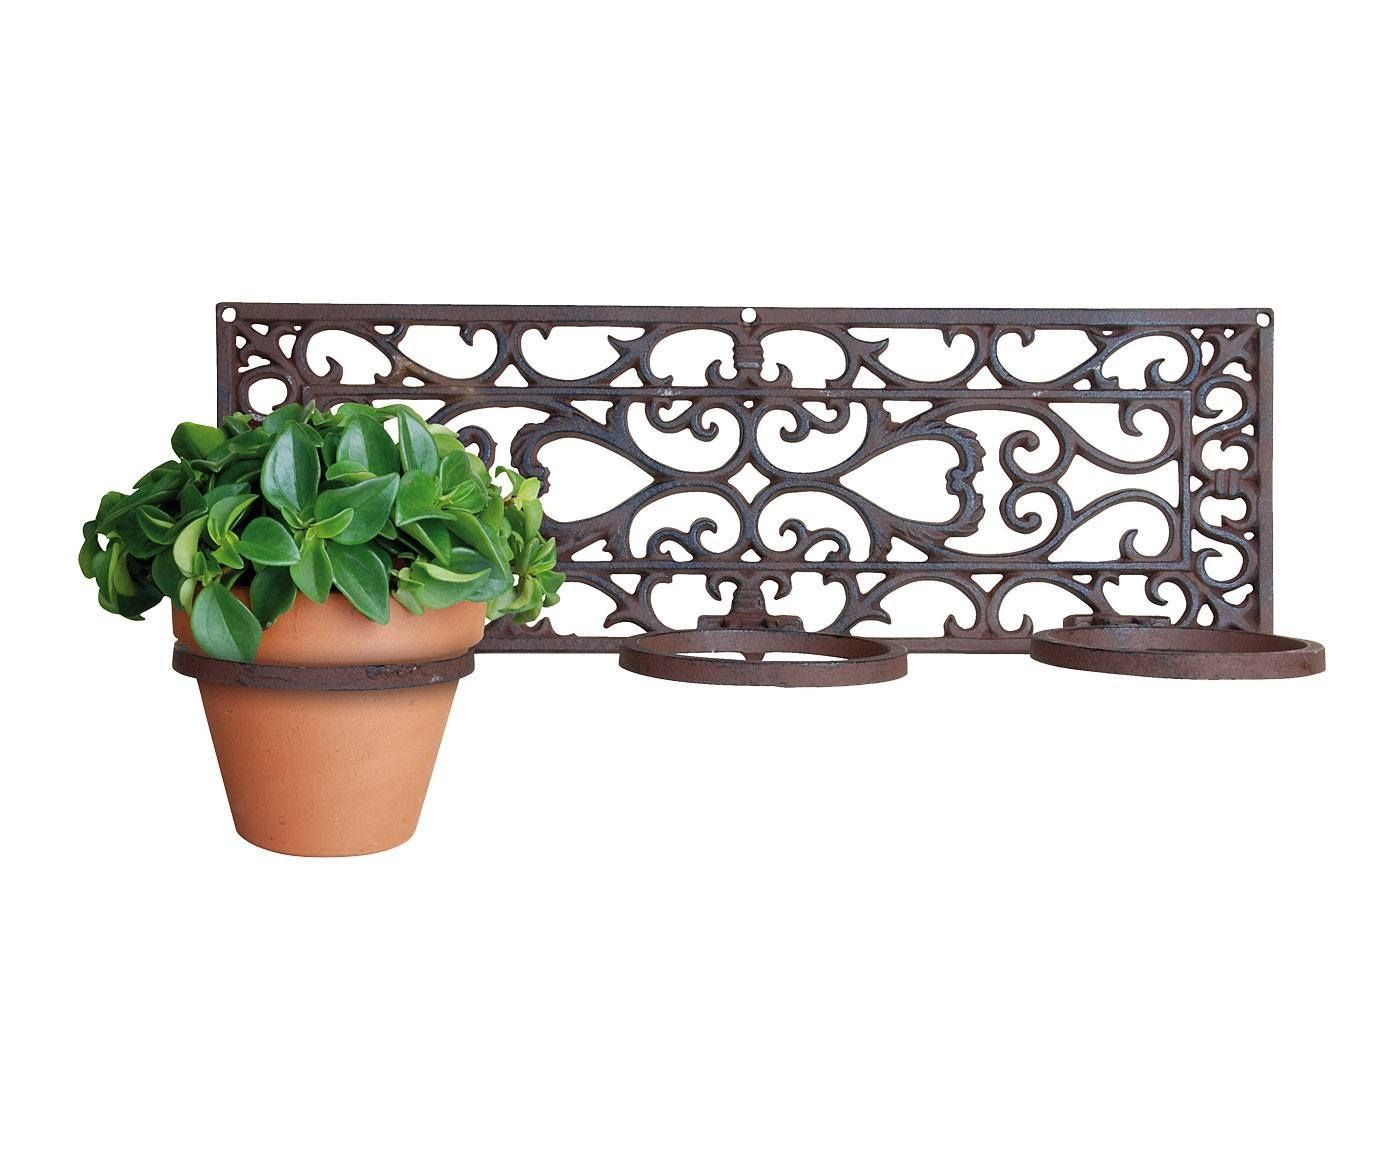 Wrought Iron Wall Mounted Flower Pot Holder Plant Decor Wall